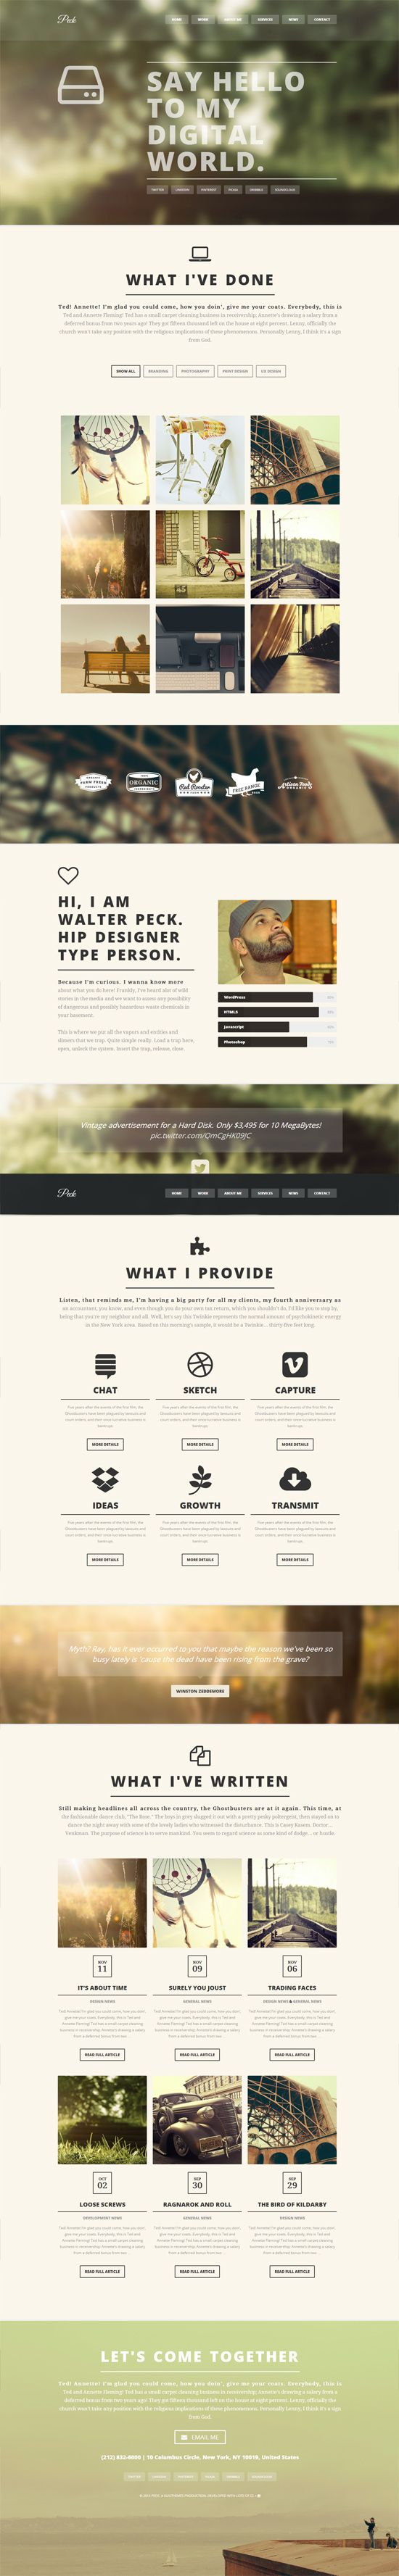 PECK - Creative One Page #WordPress Theme Tendances Iscomigoo #Webdesign